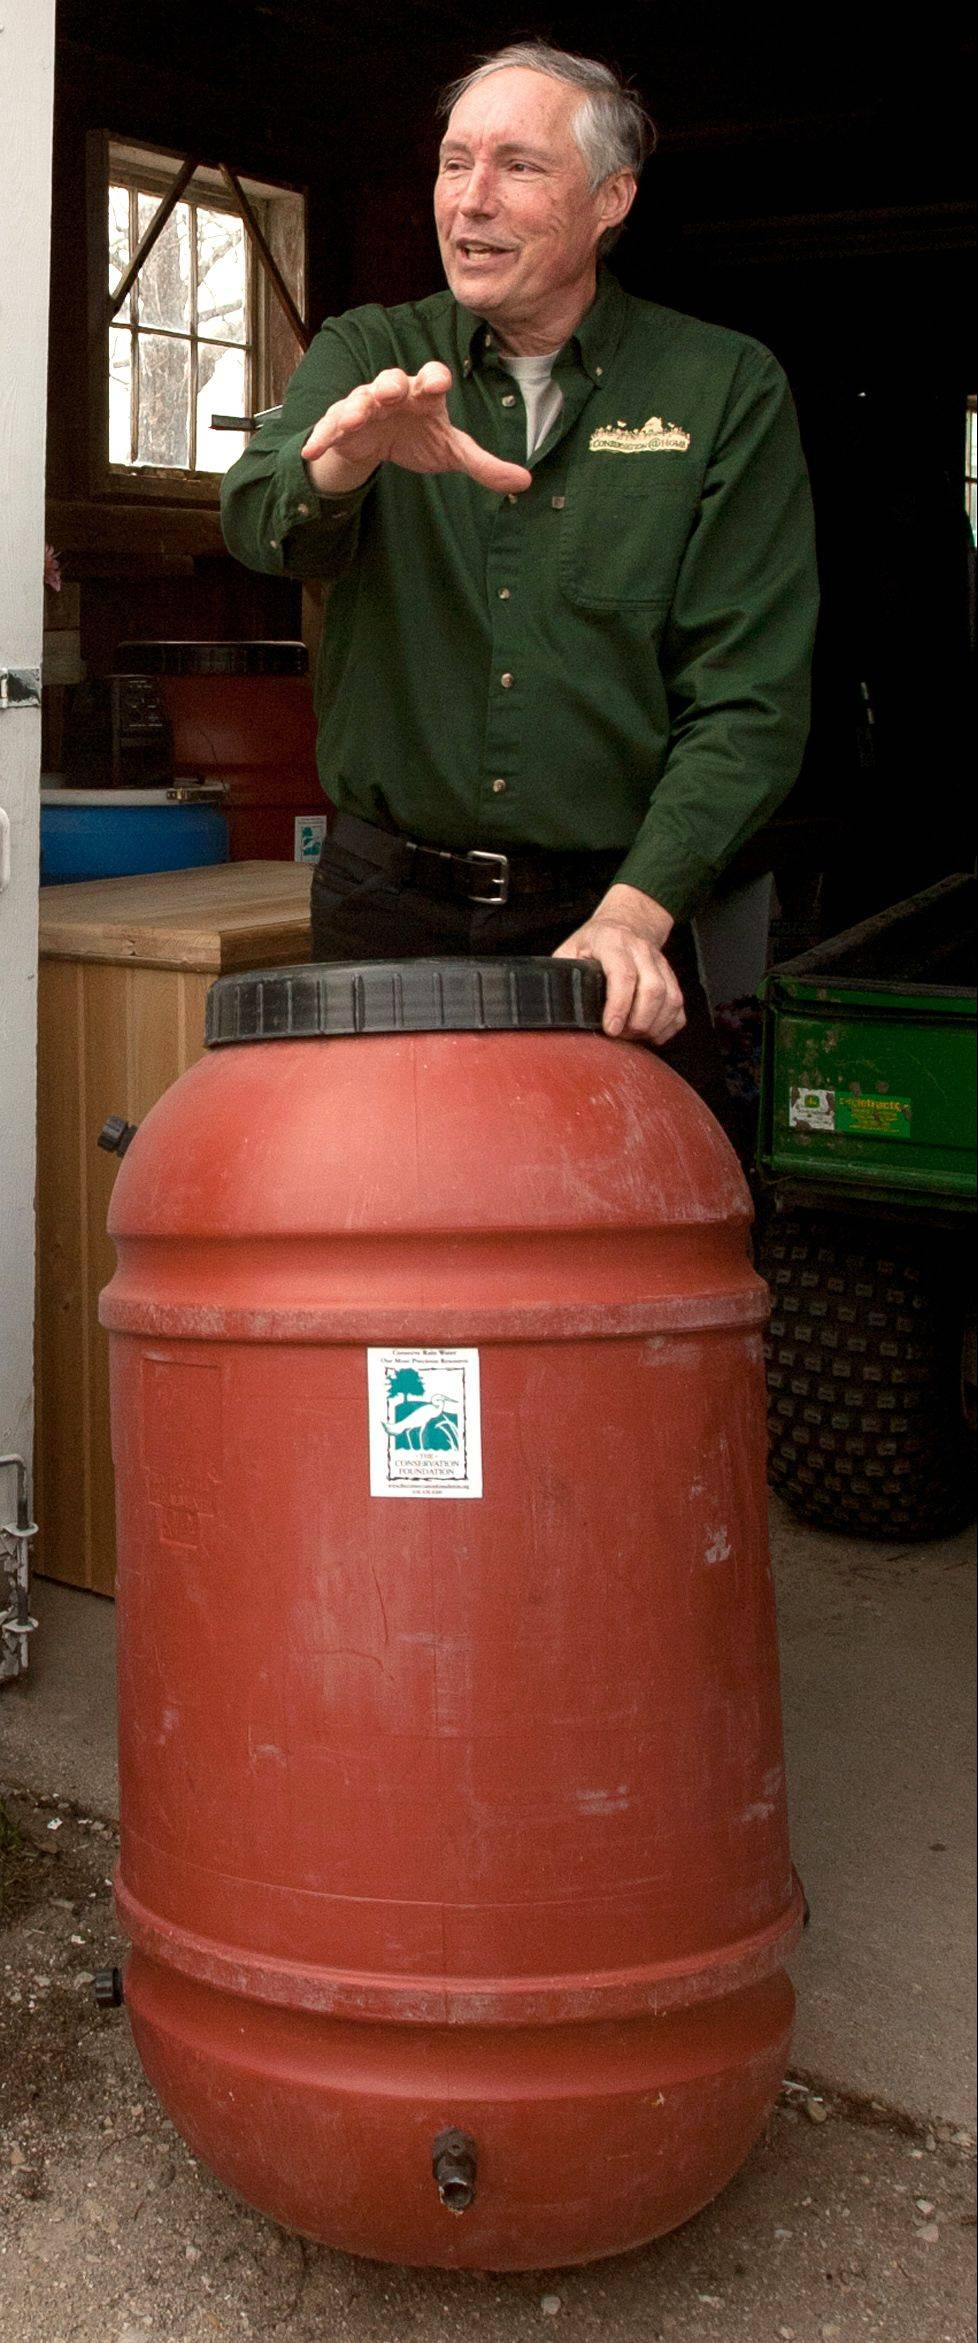 Jim Kleinwachter of the Conservation Foundation talks about rain barrels at the McDonald Farm in Naperville.